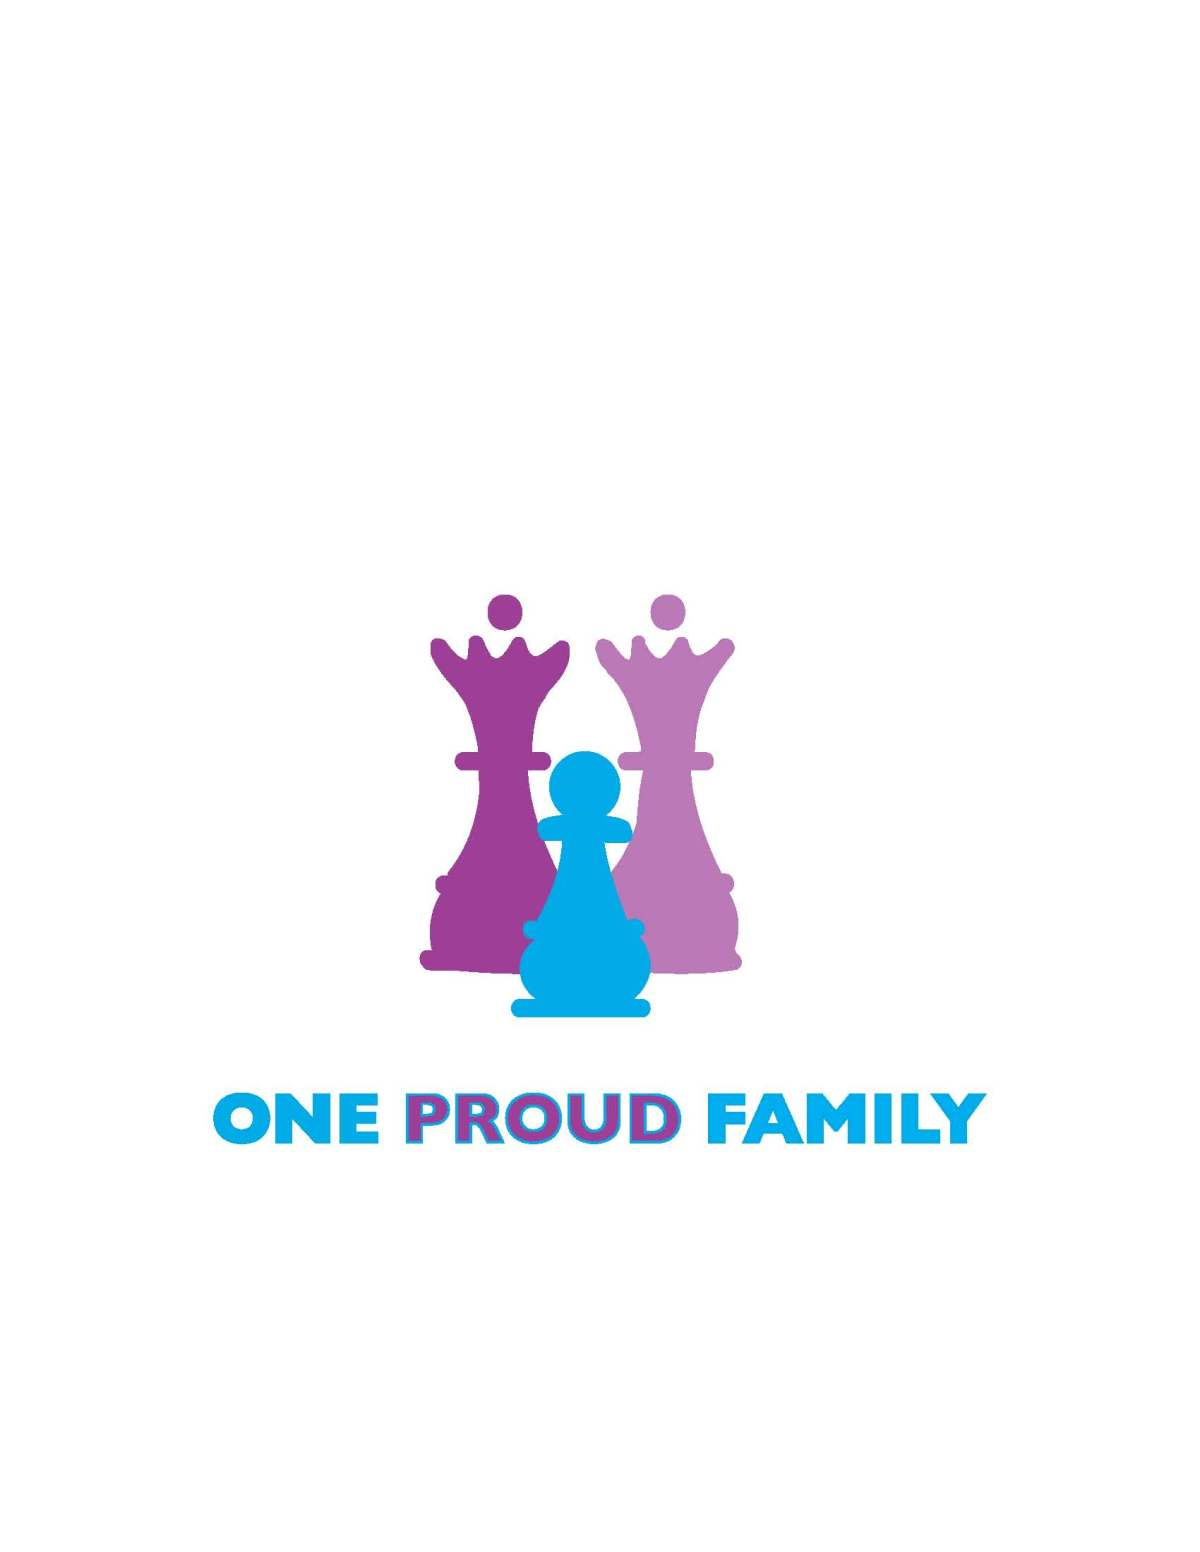 One proud family